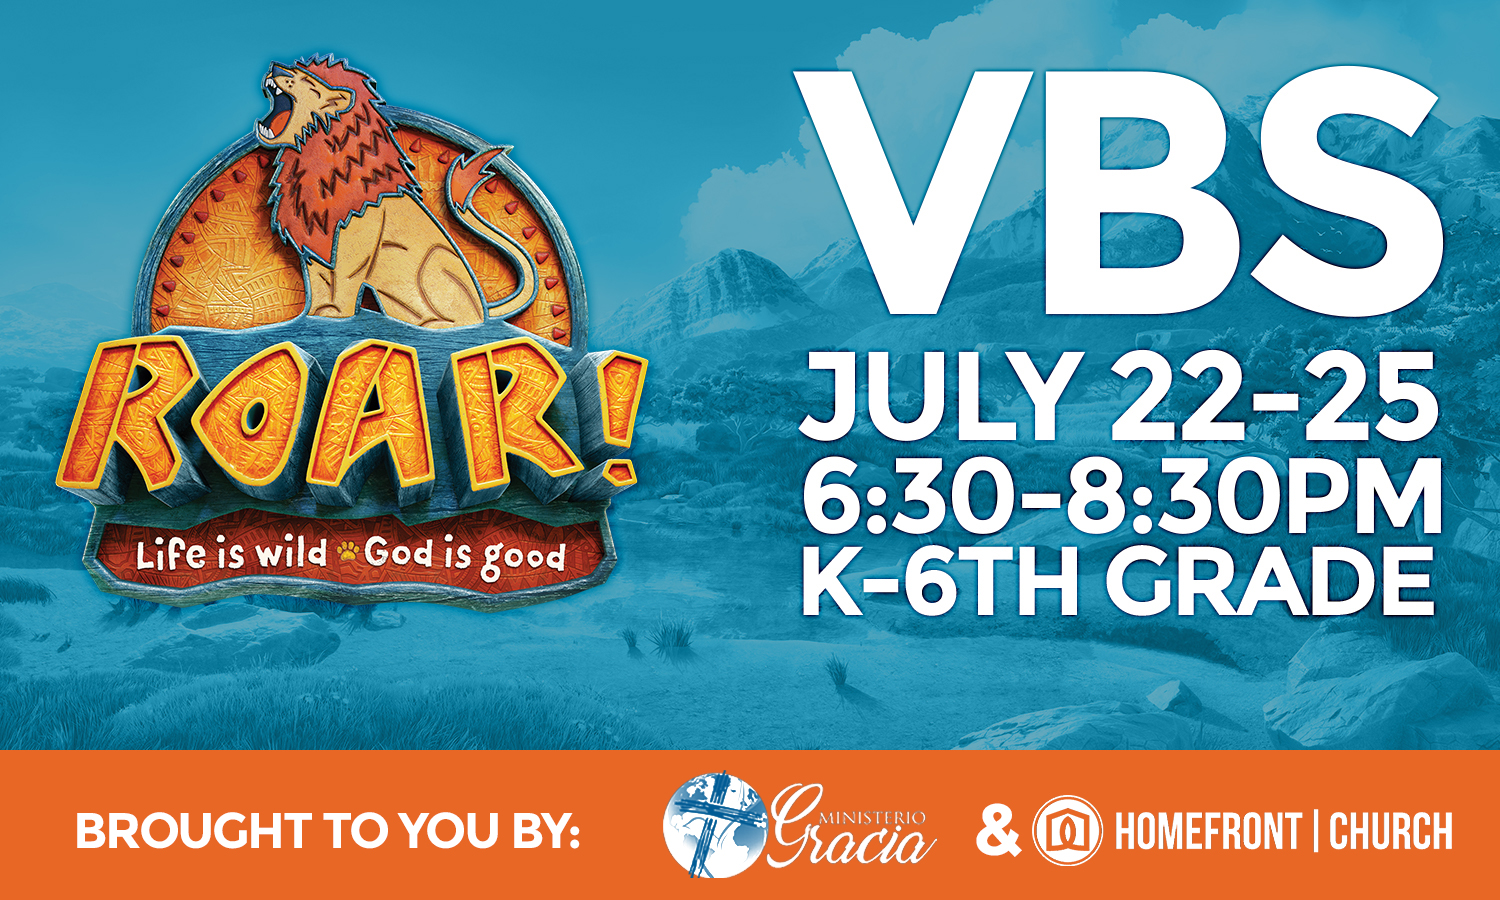 2019-vbs-homefront-church-header.jpg